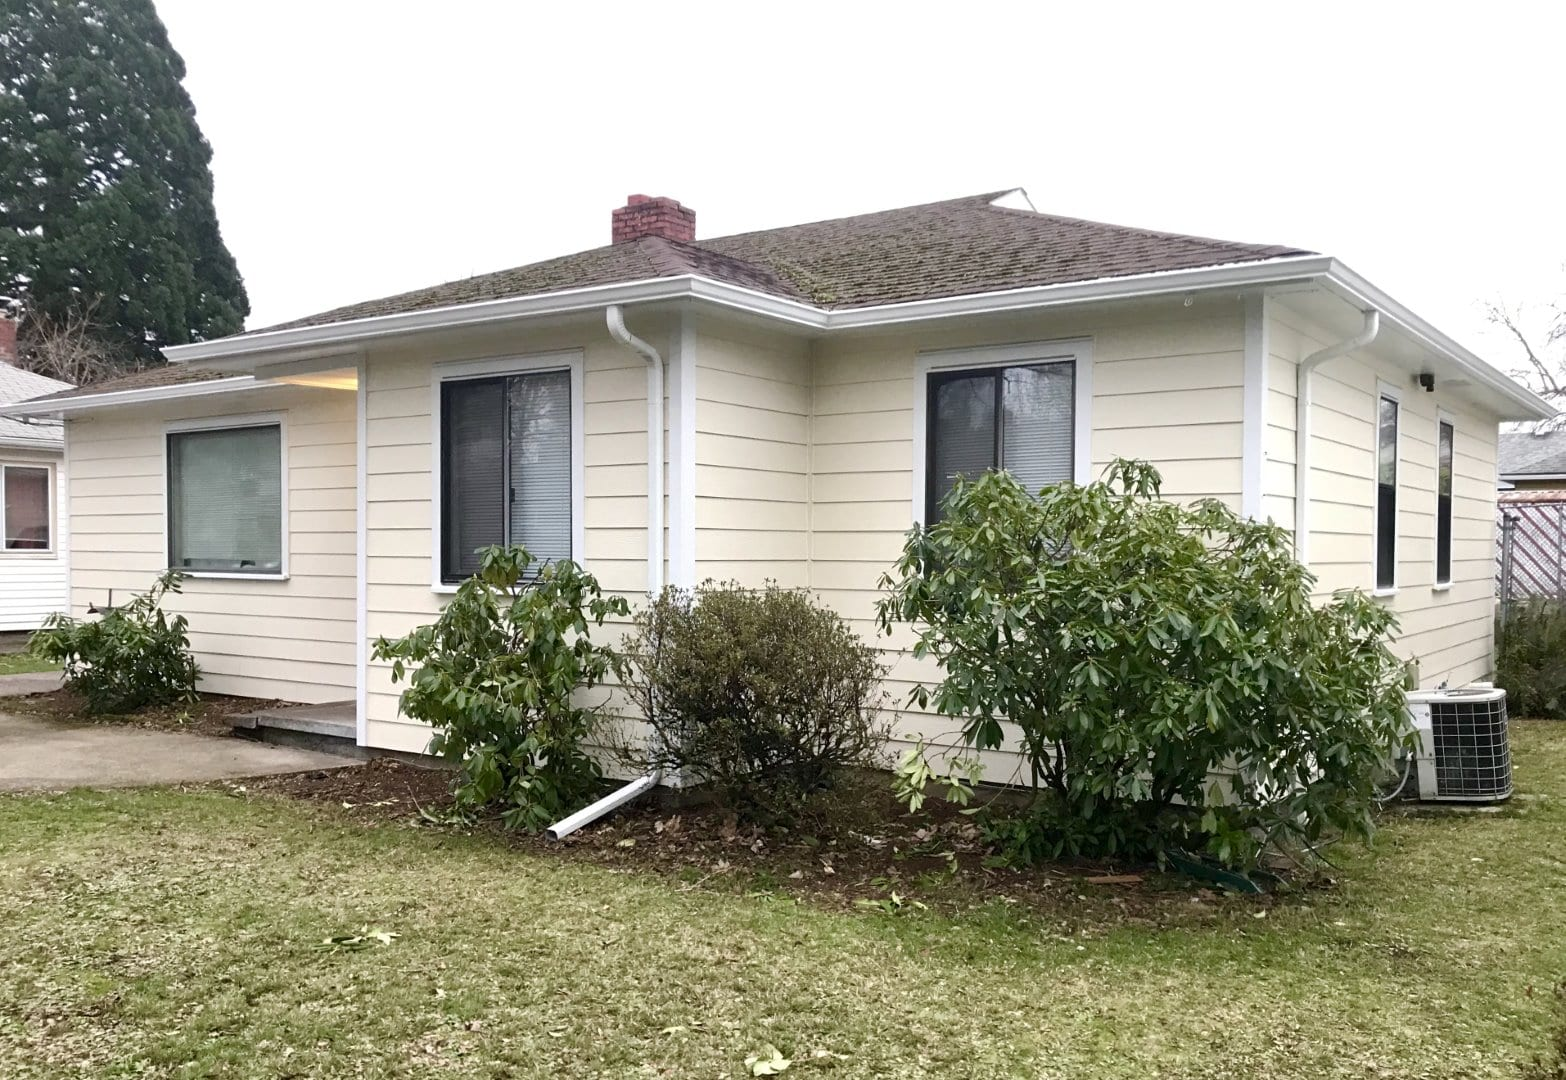 After - ColorPlus James Hardie Siding, Painted Eves & New Gutters in SE Portland home